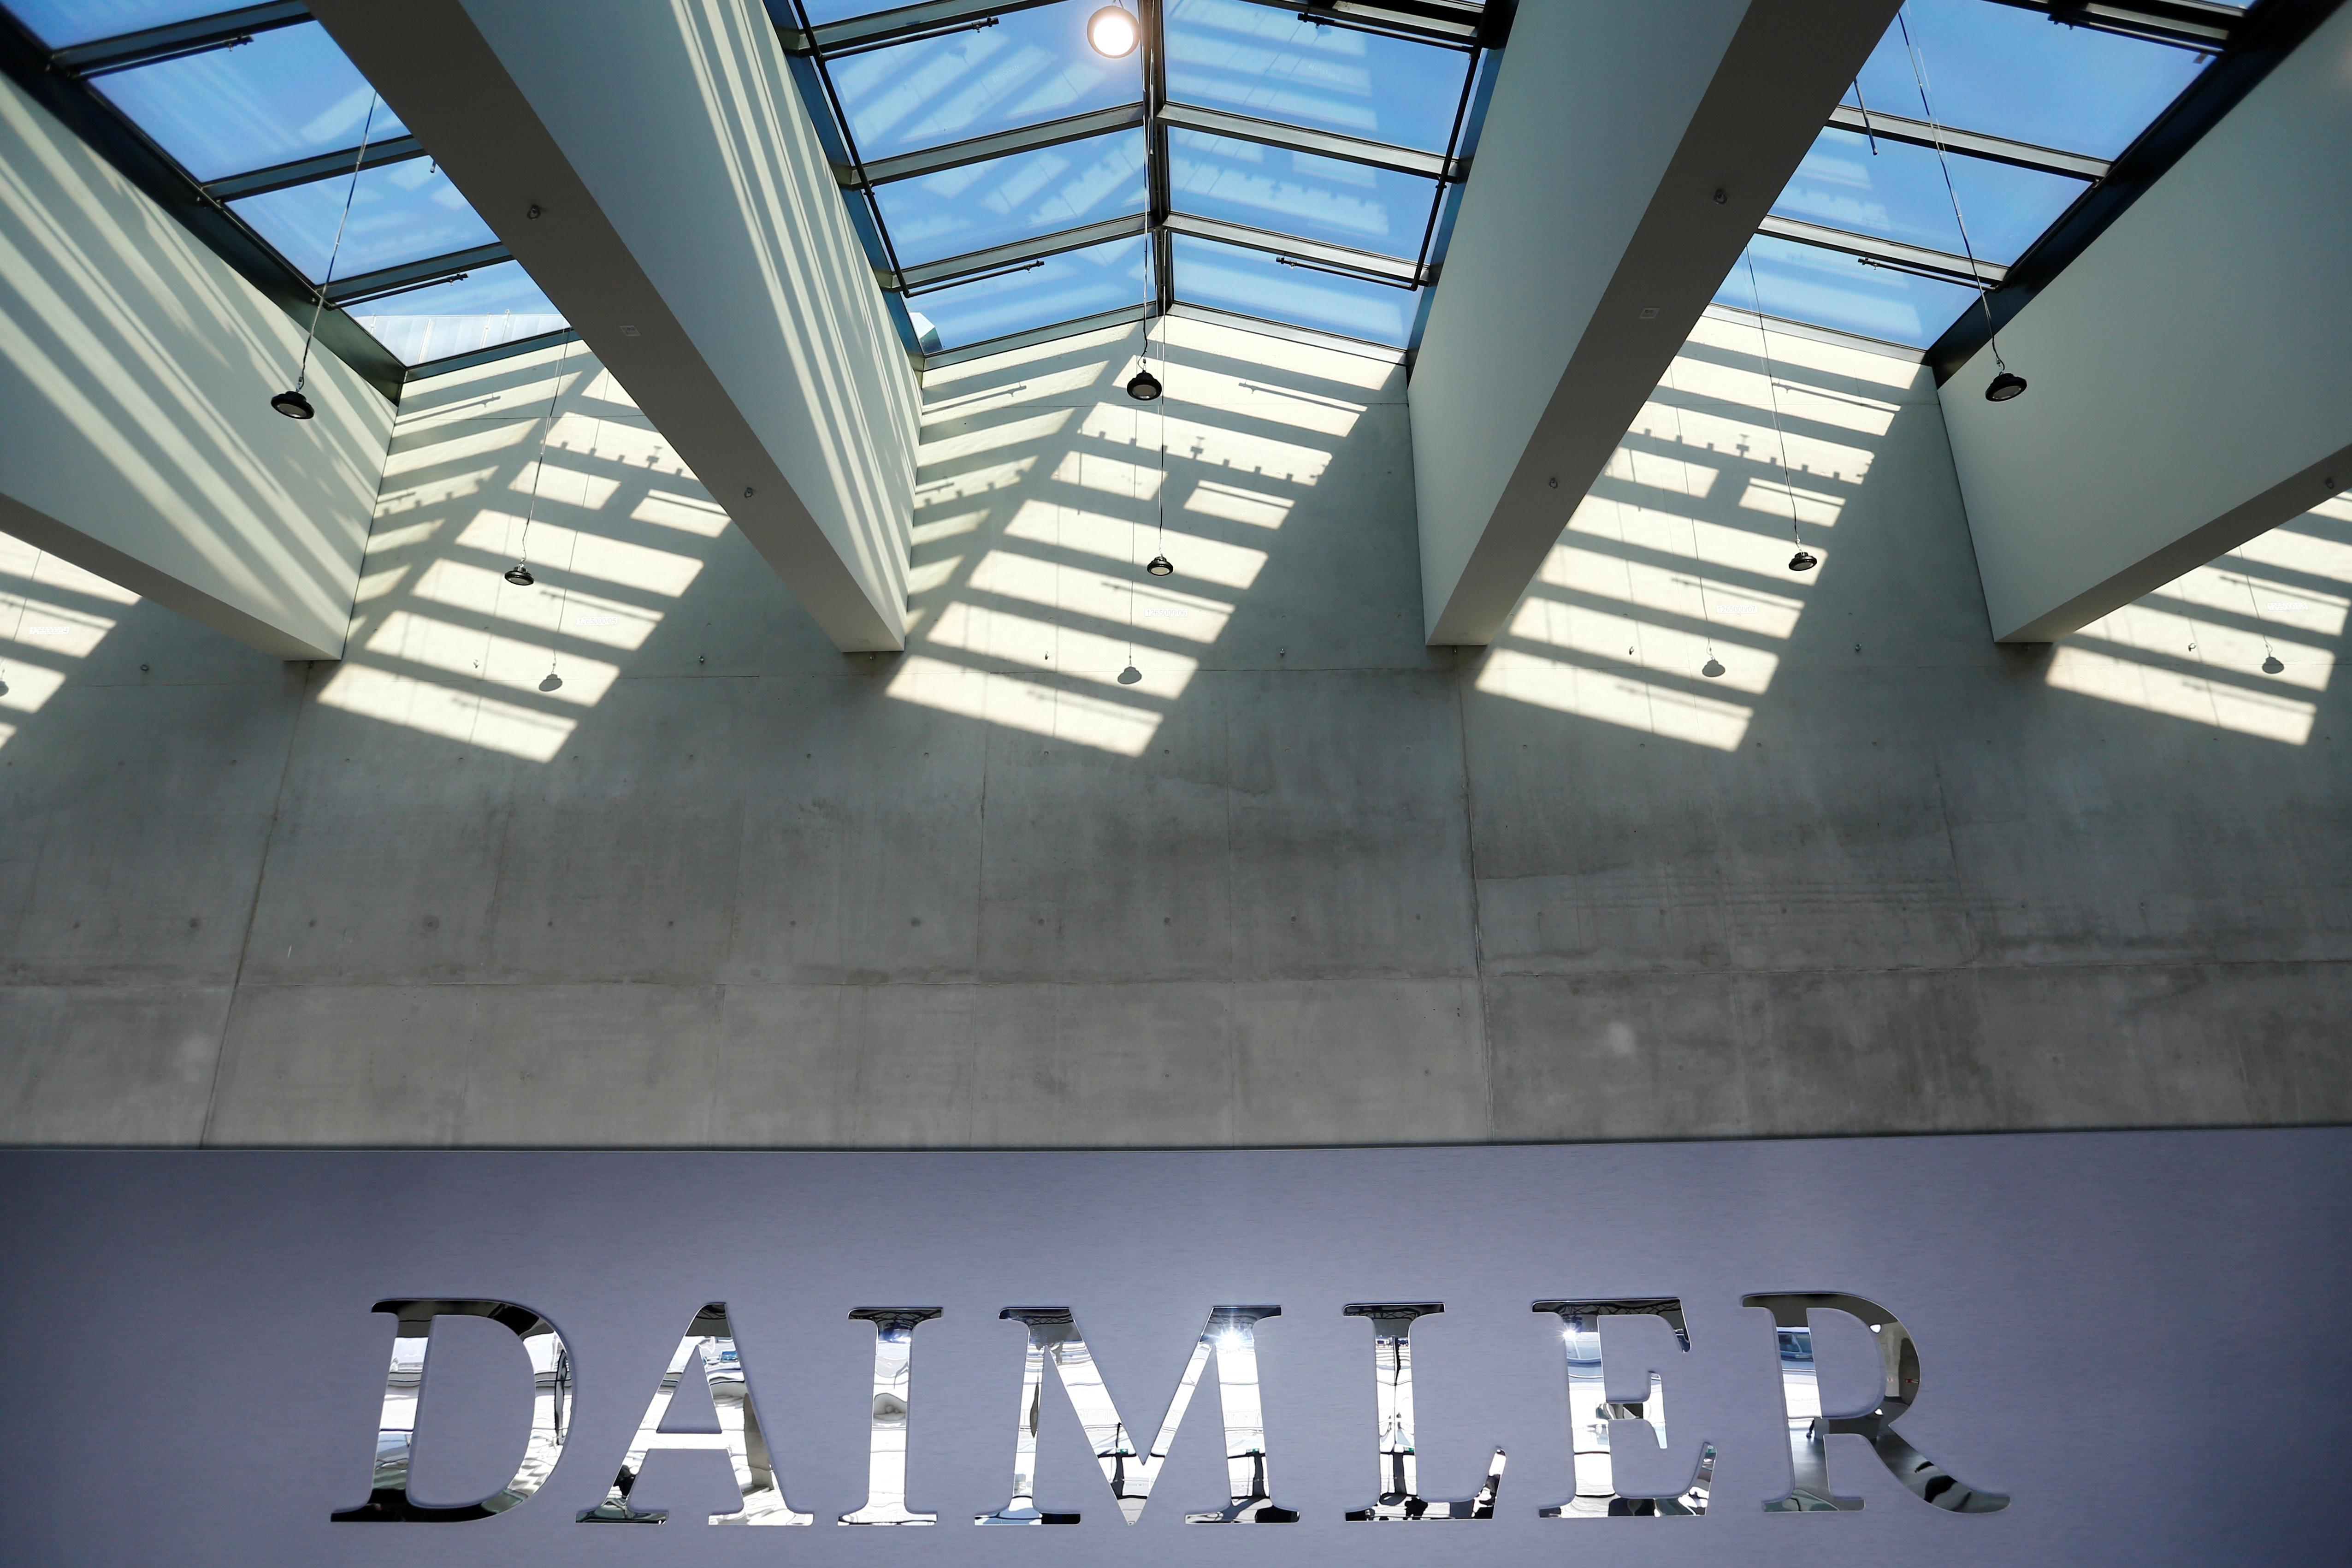 Daimler faces up to 1 billion euro diesel fine - Der Spiegel